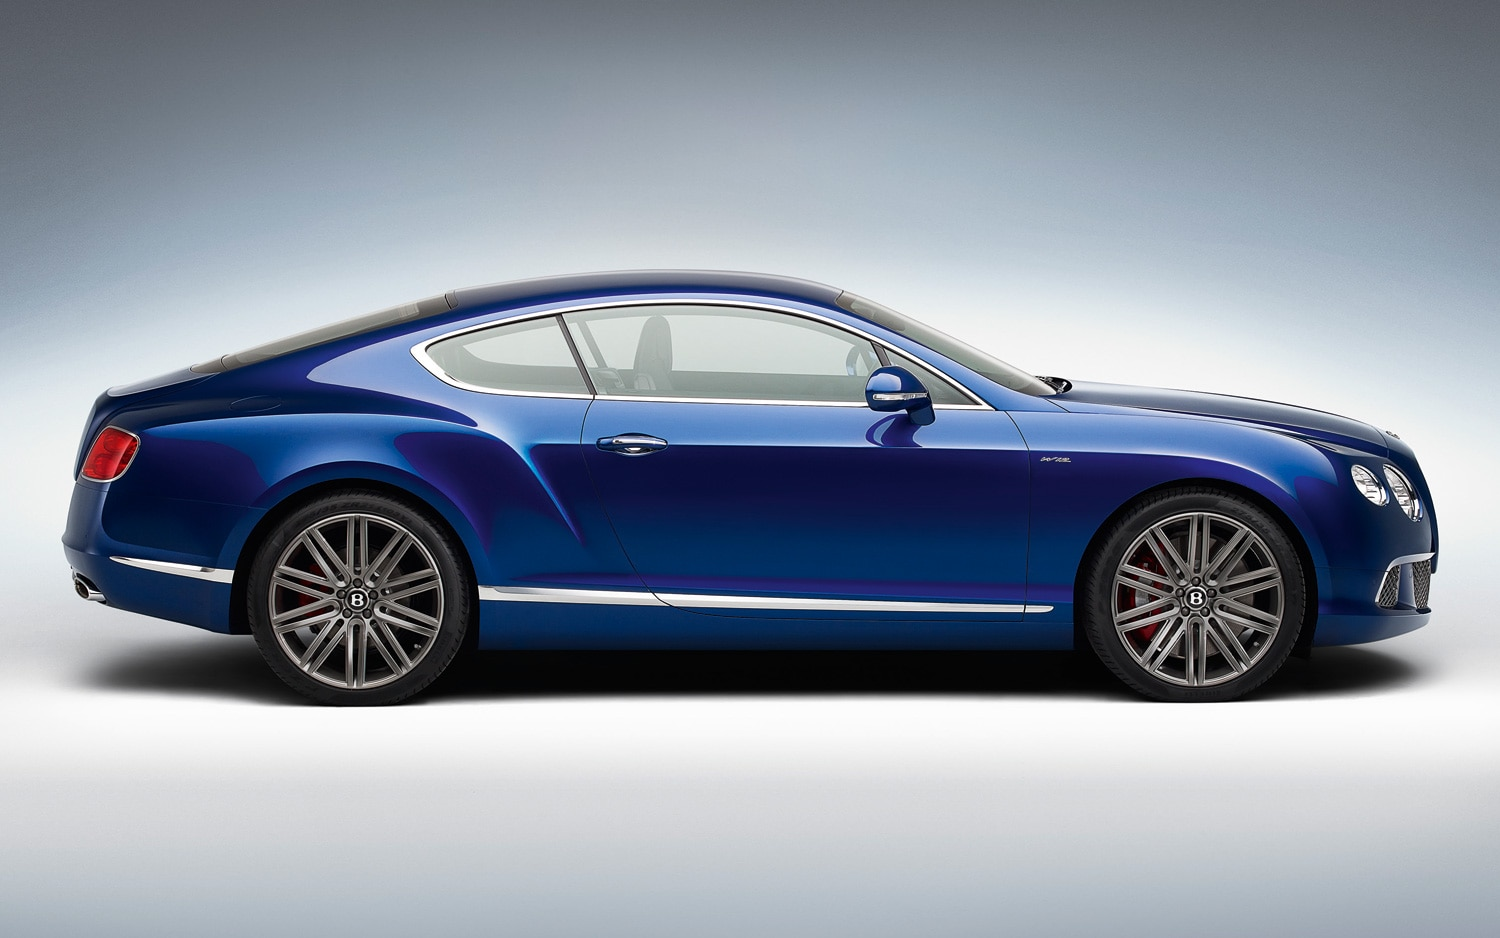 2013 Bentley Continental GT Speed Has 616 HP, 205-MPH Top ...